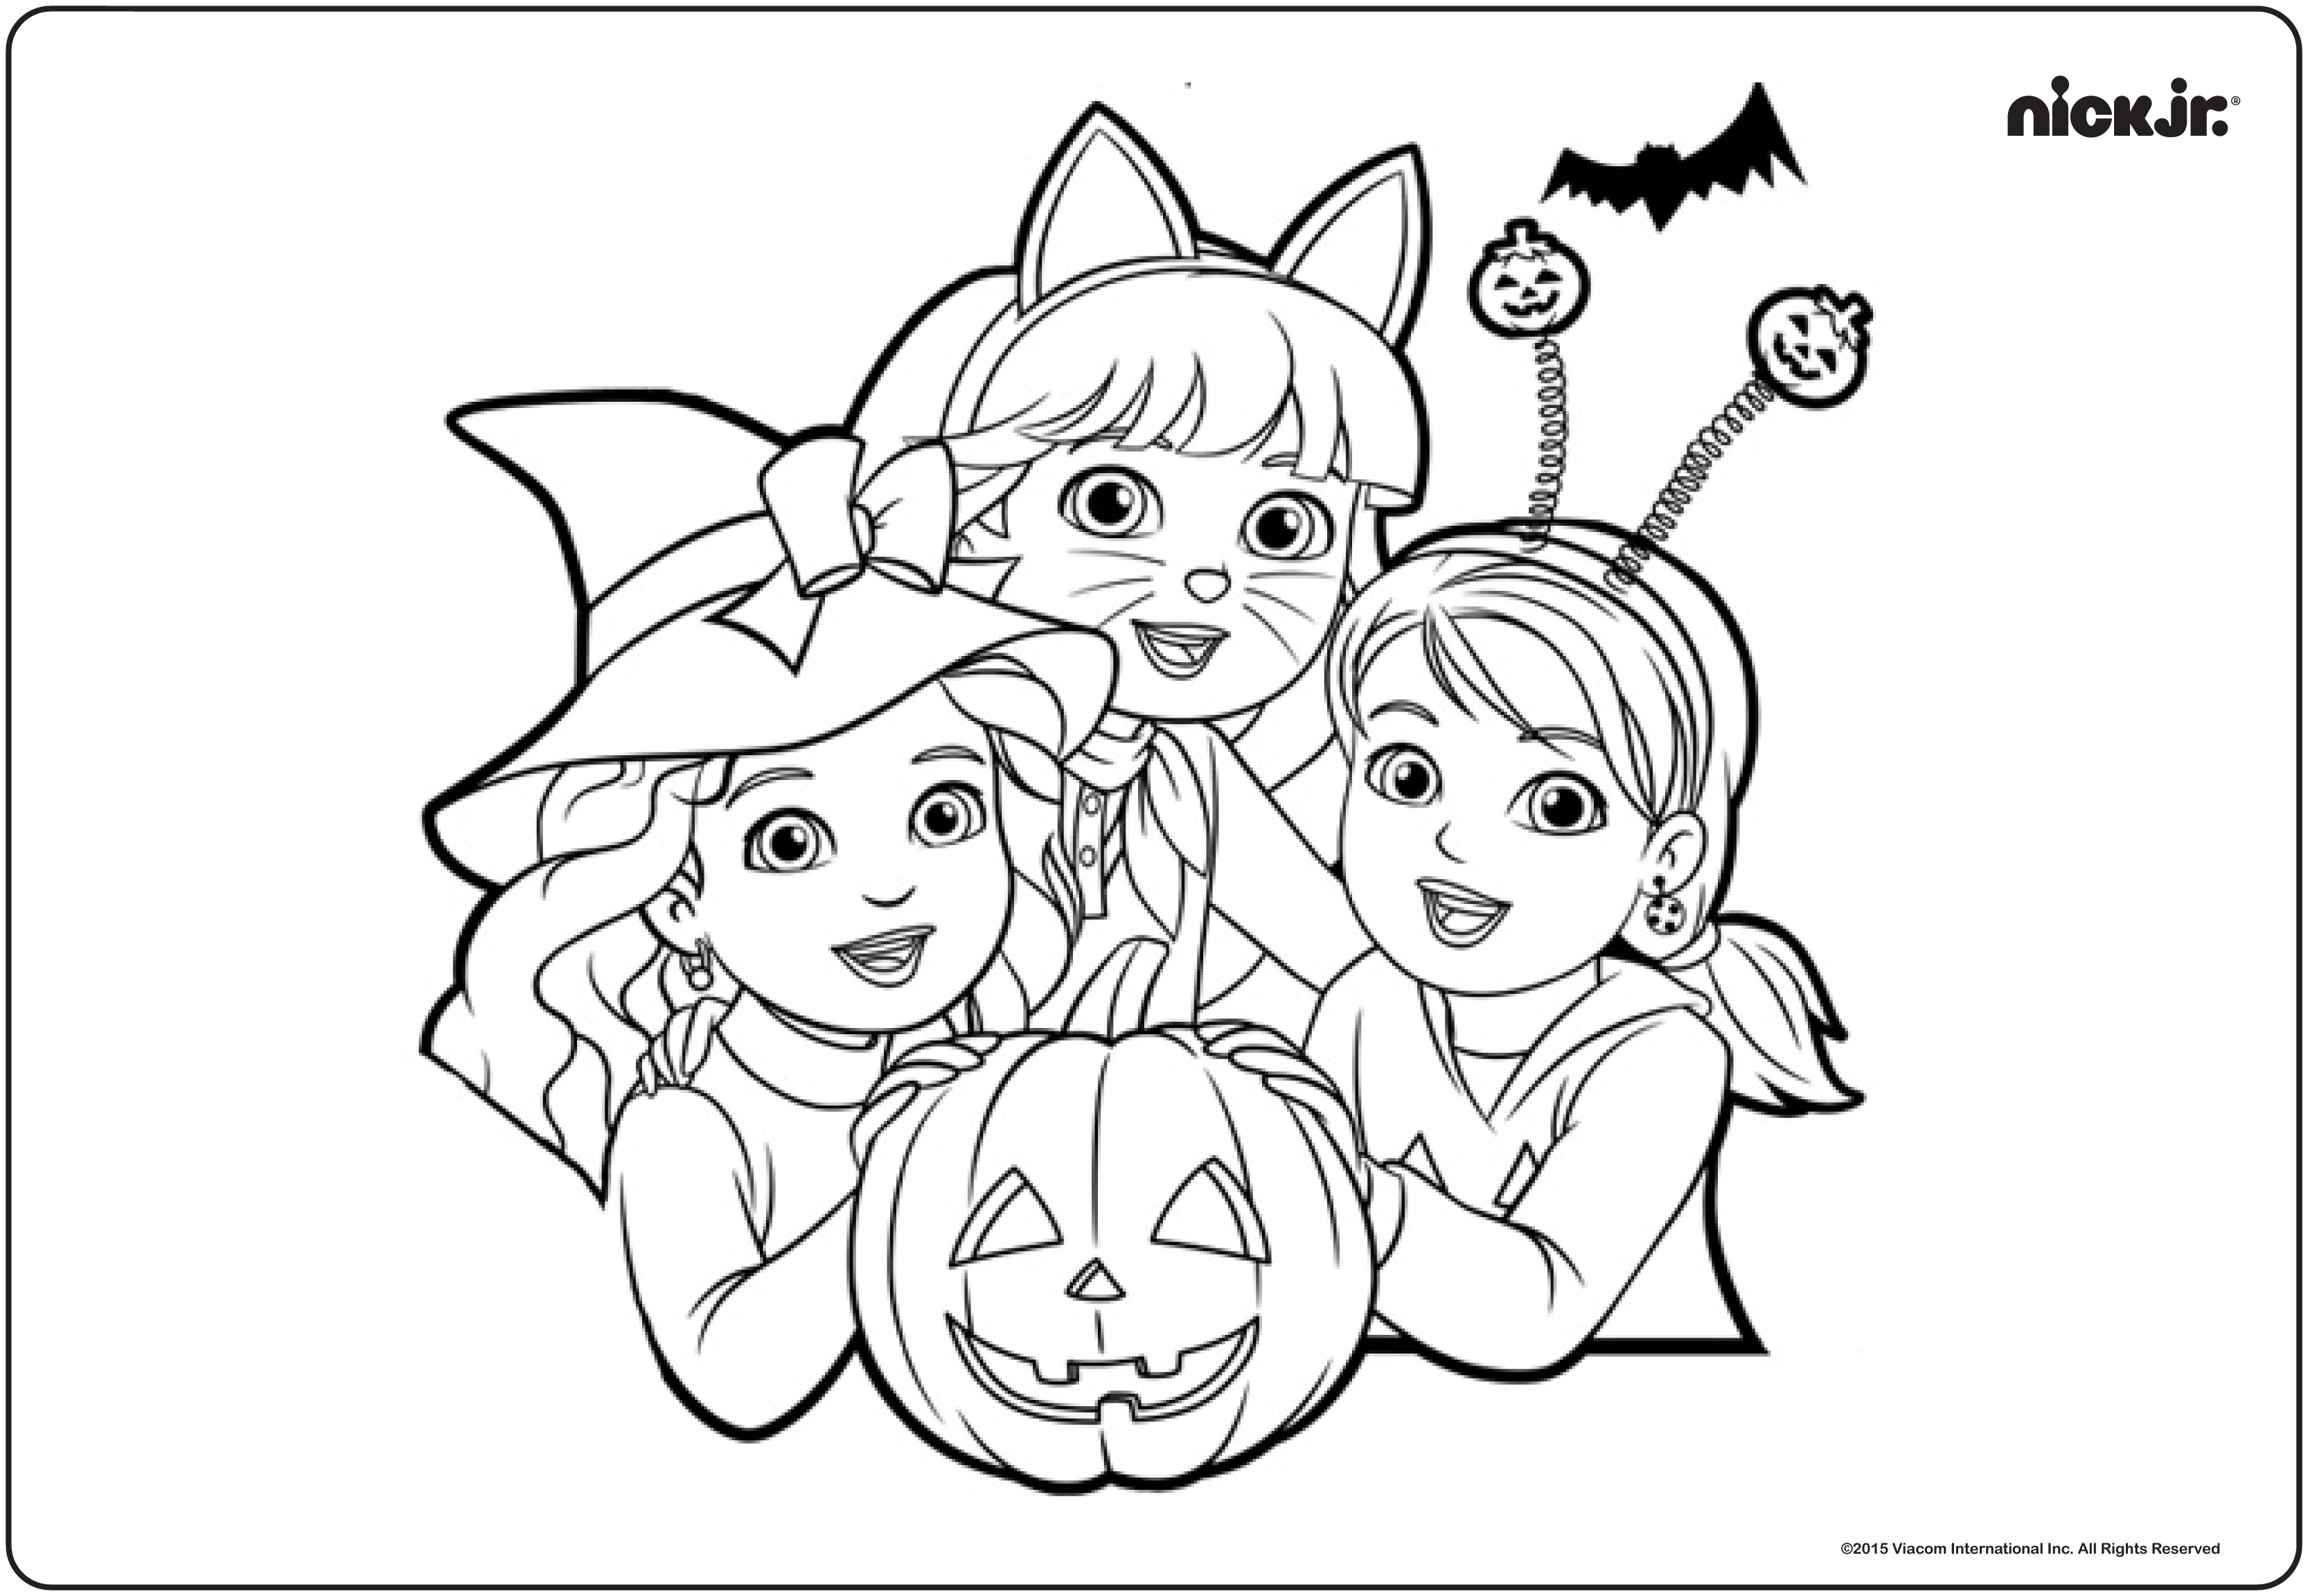 coloring pages at nick jr - photo#44